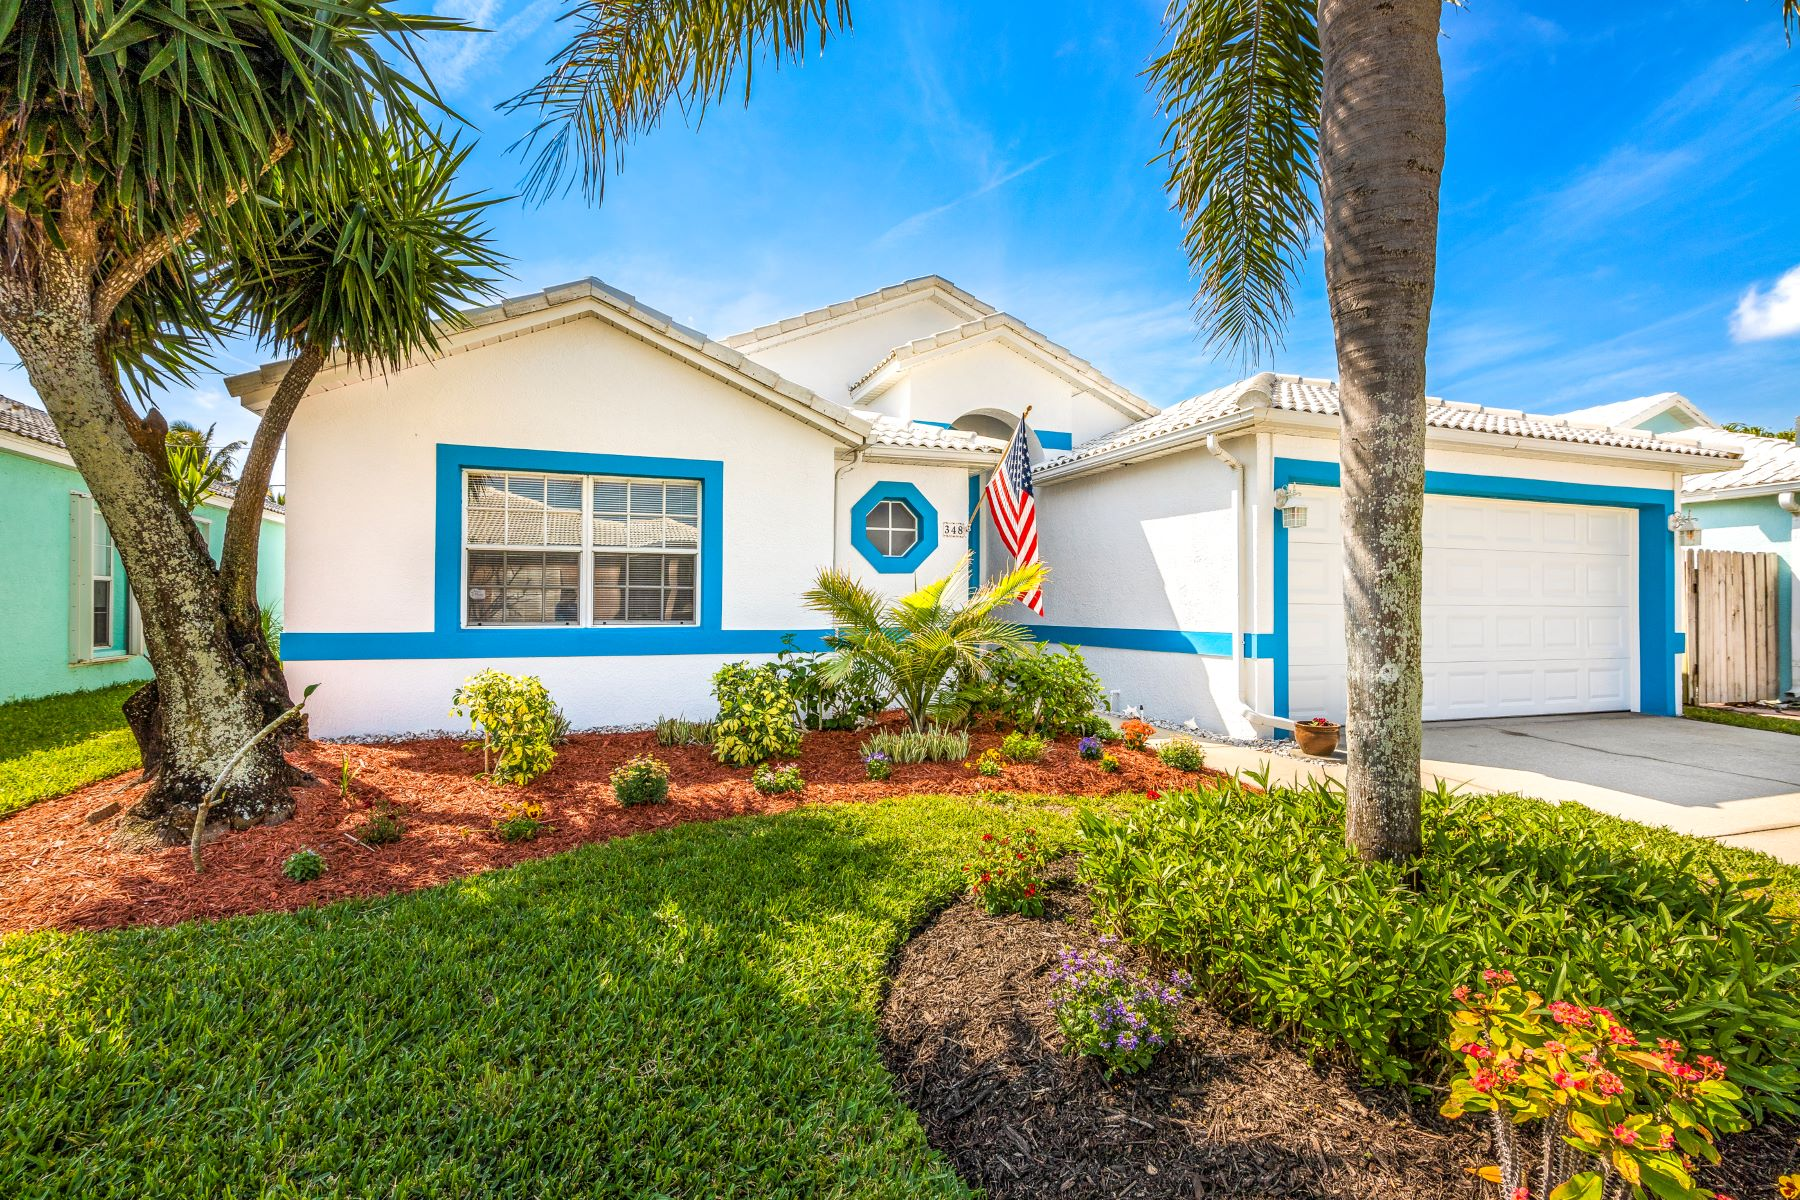 Single Family Homes for Sale at 348 Las Olas Drive Melbourne Beach, Florida 32951 United States